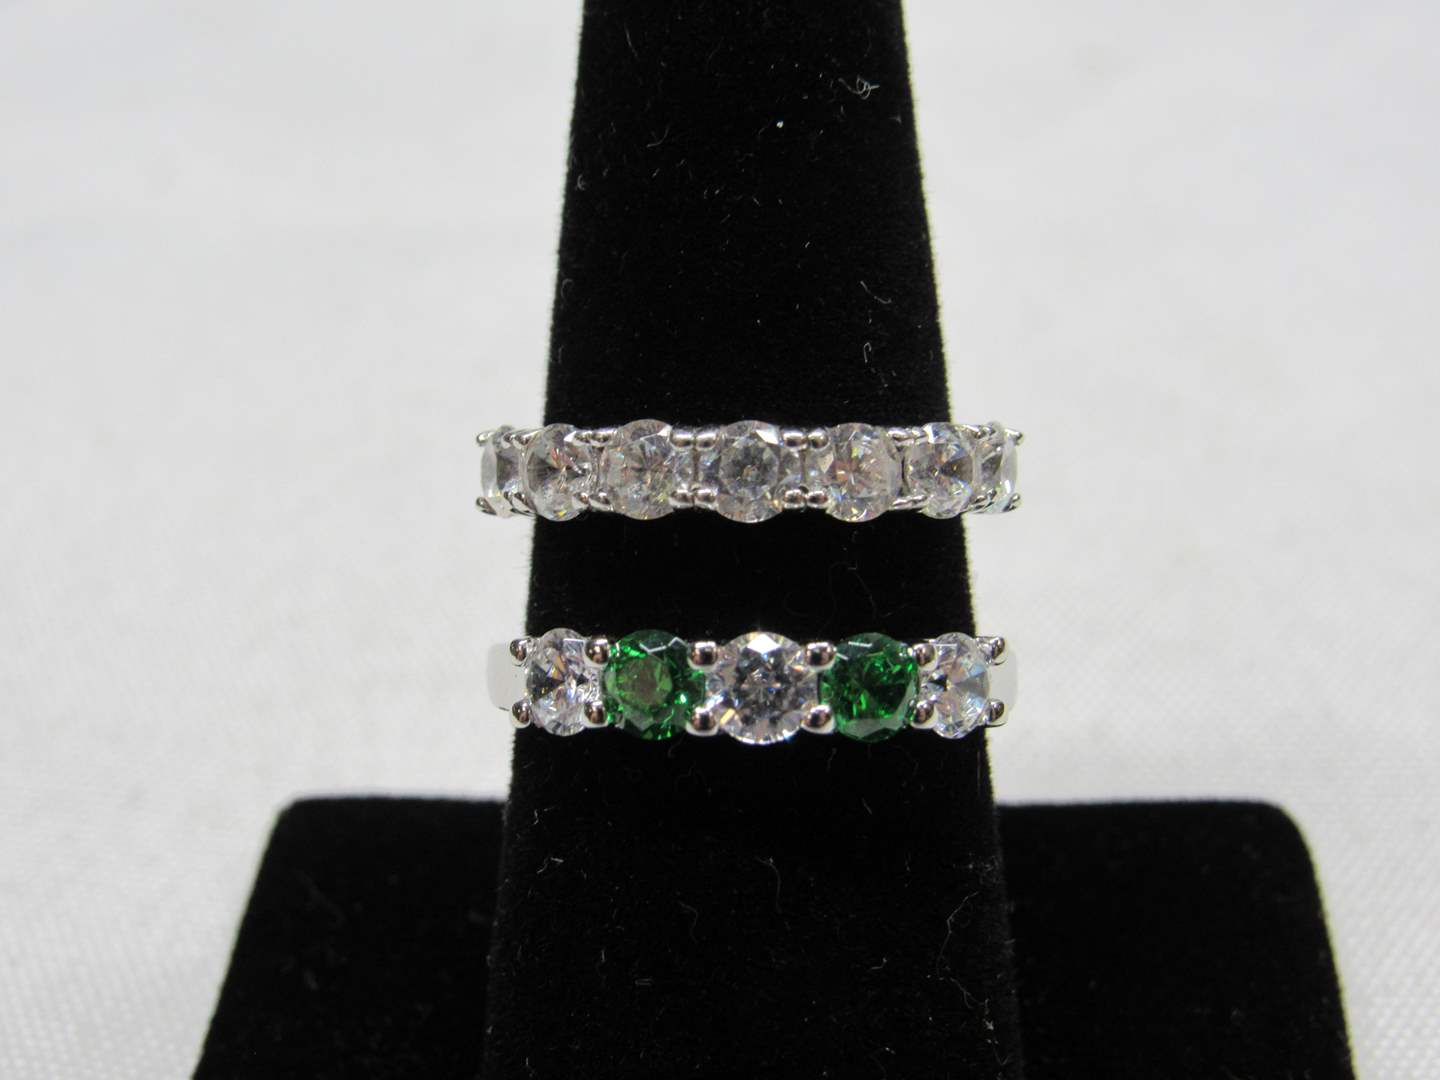 Lot # 234  2 sterling silver rings w/cz's and green accents size 7&8 (main image)